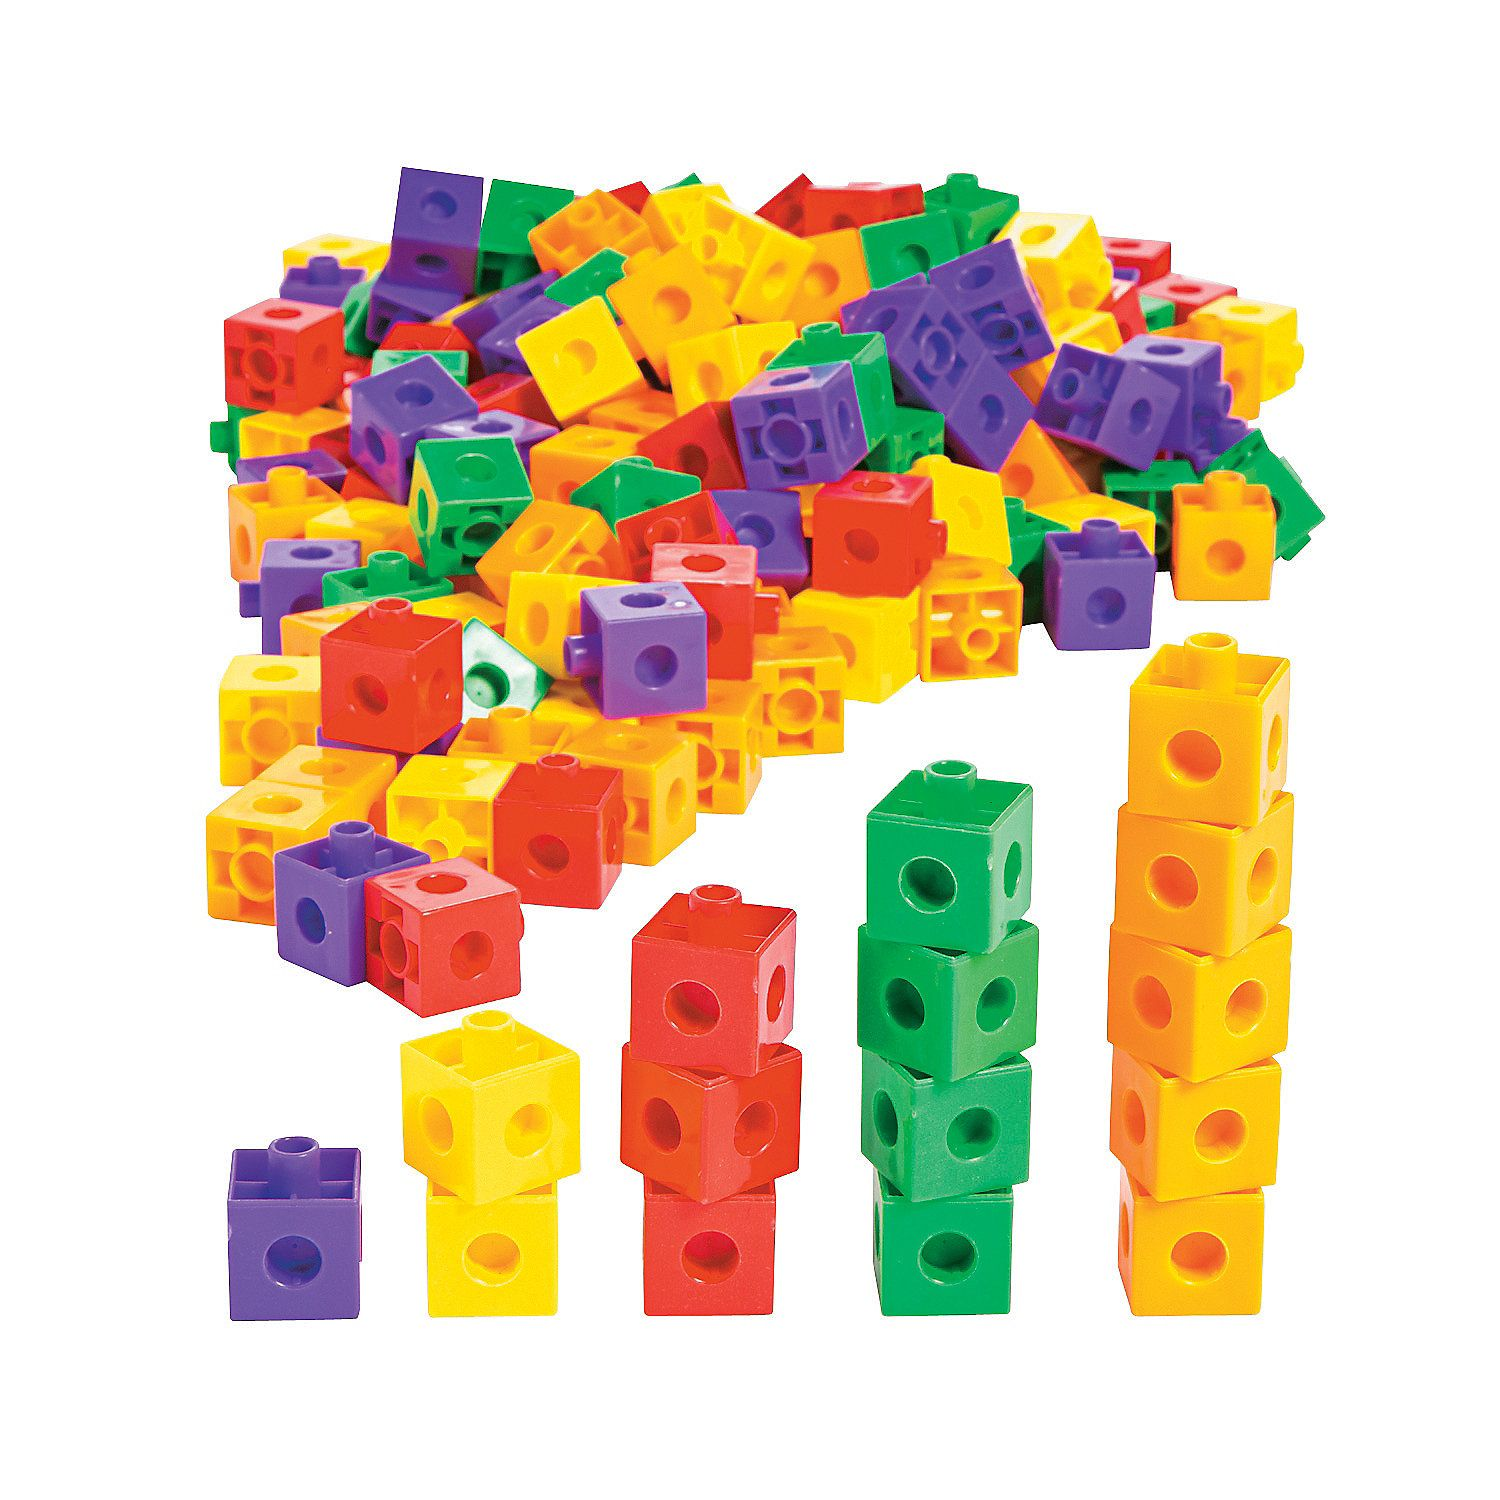 Counting Amp Stacking Cubes With Images